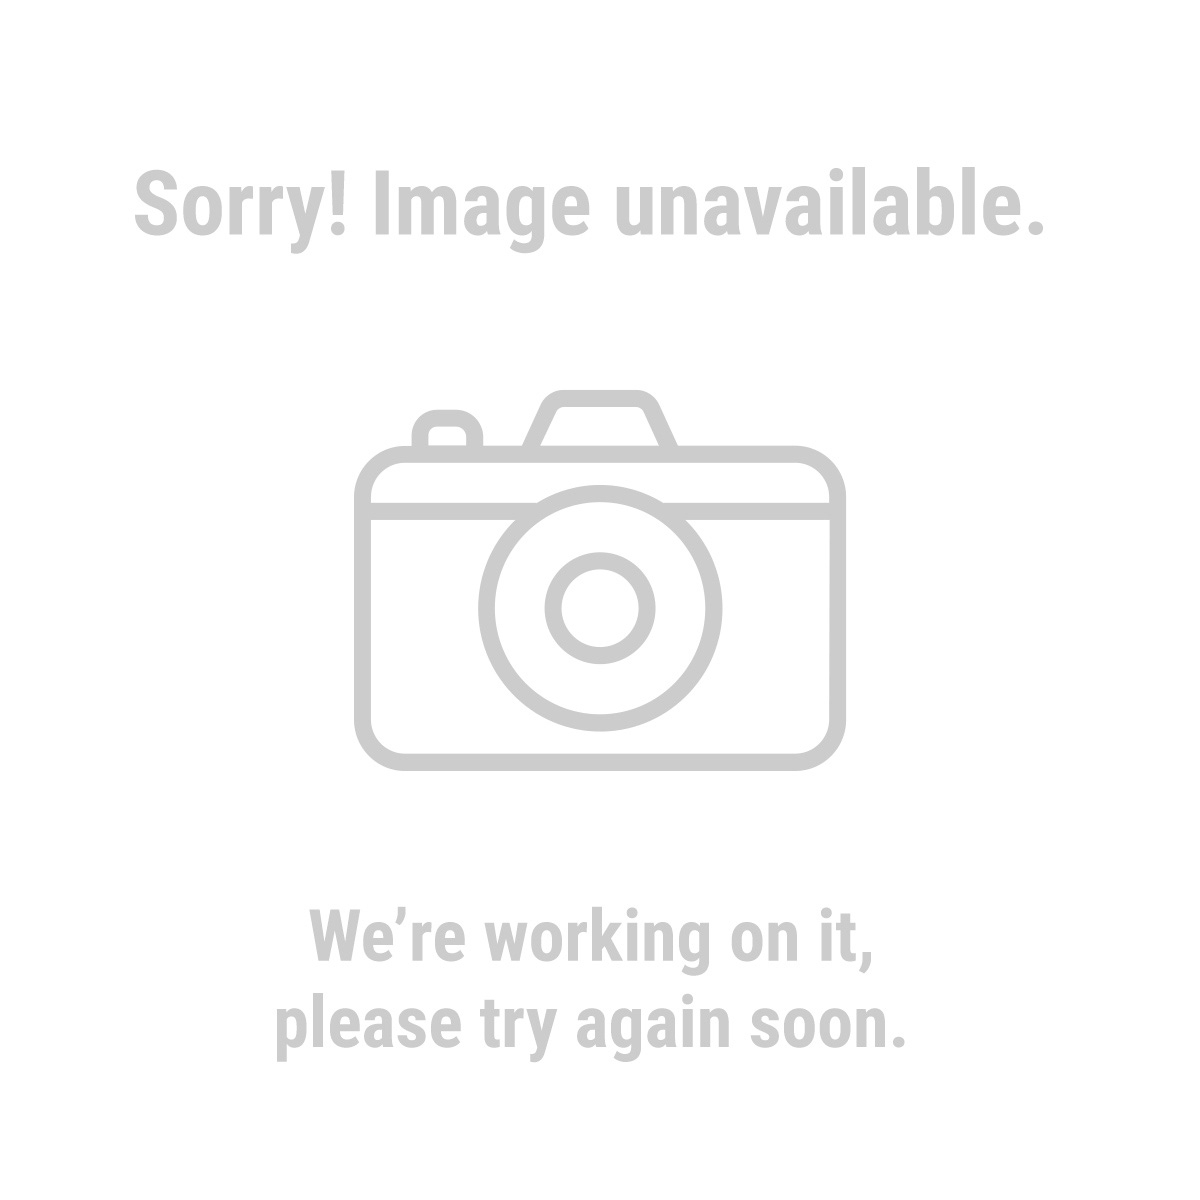 North American Health+Wellness 67212 Automatic Wrist Blood Pressure Monitor